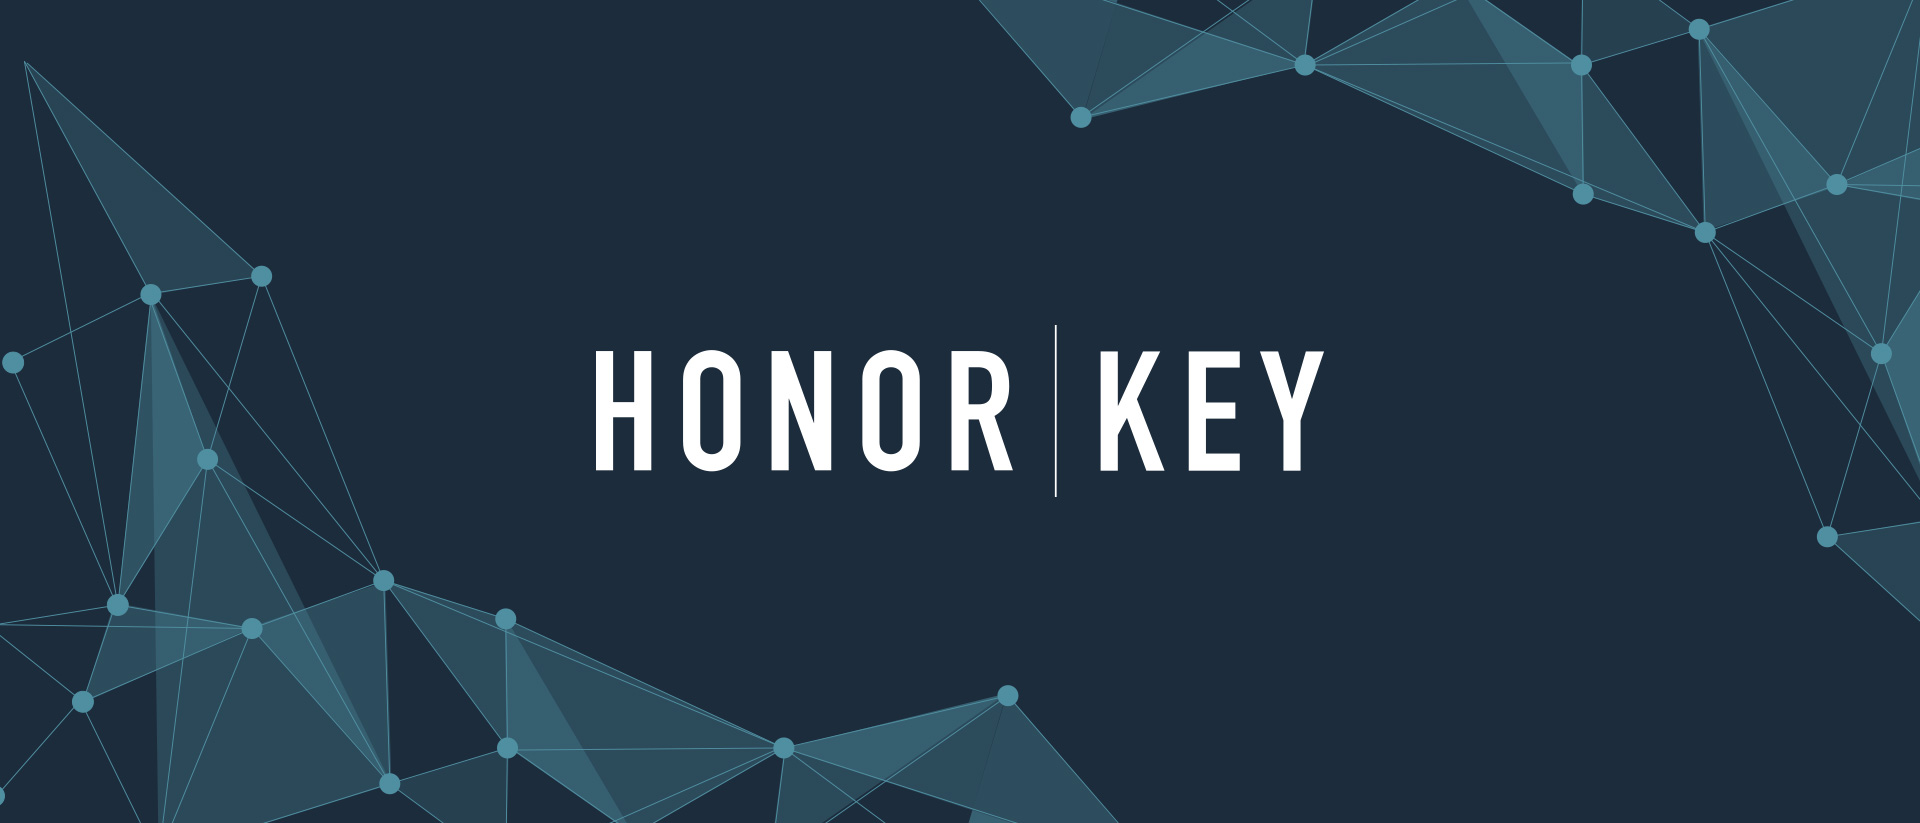 The Honor Key